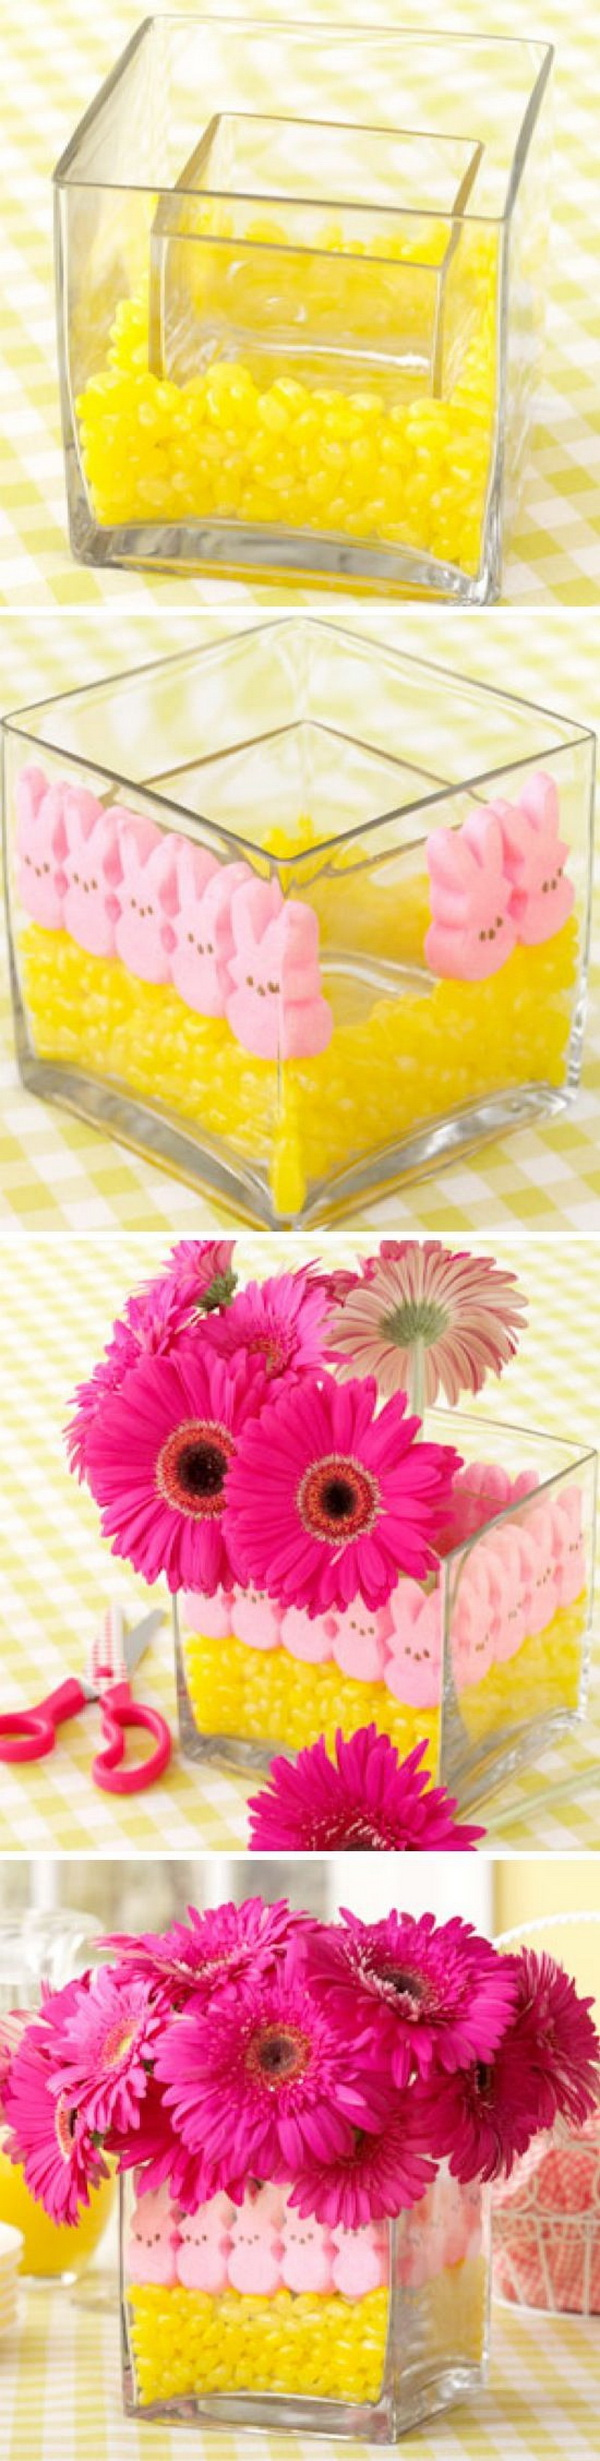 Easter Peeps Flower Vase Centerpiece. Put those cute little marshmallow bunnies and jellybeans in several different colors at center stage with this clever Peeps flower vase idea!